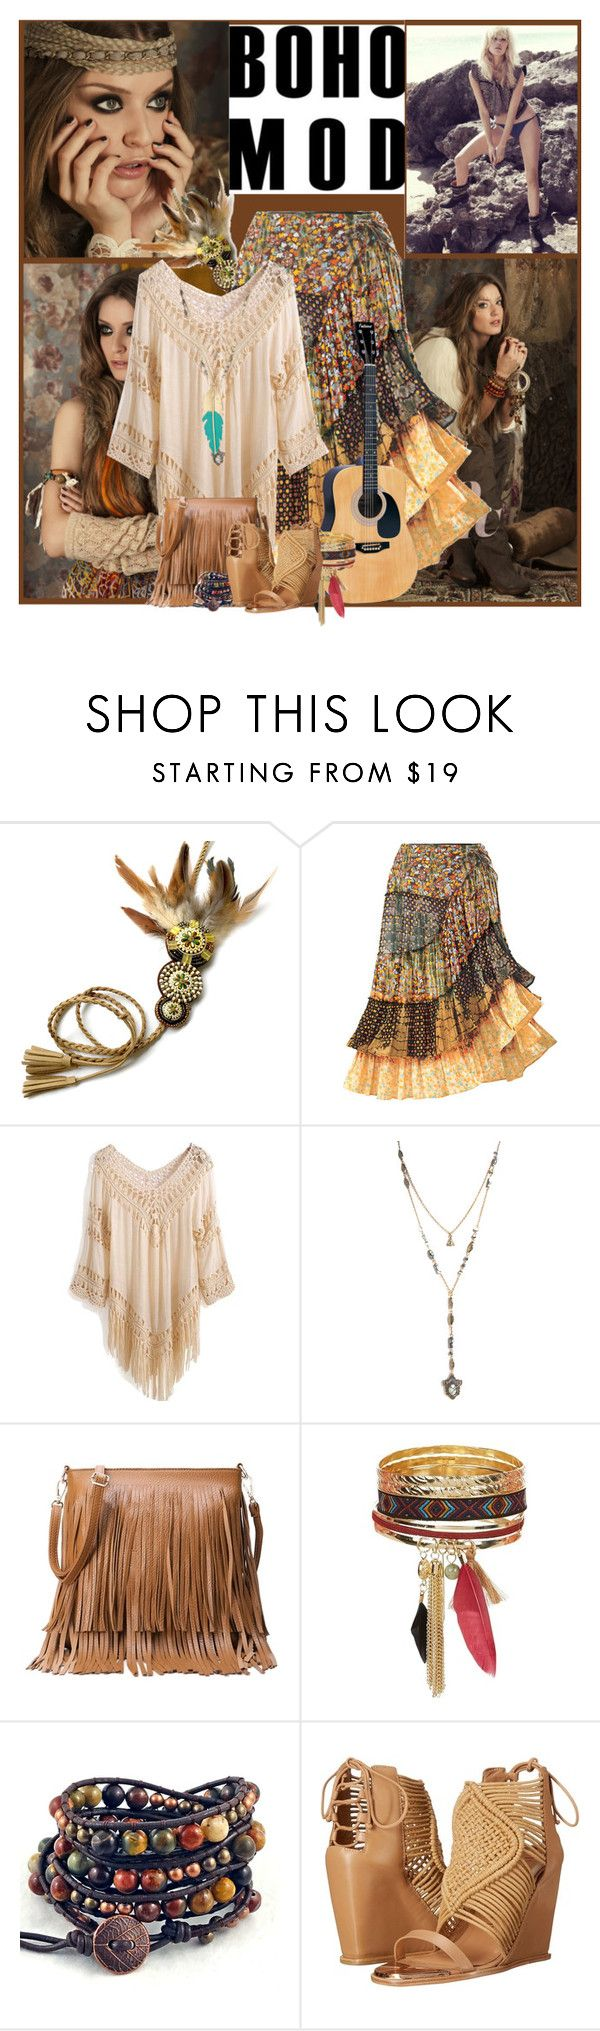 """Bo Ho Chic"" by flowerchild805 ❤ liked on Polyvore featuring Behance, Ivy Kirzhner and Accessorize"